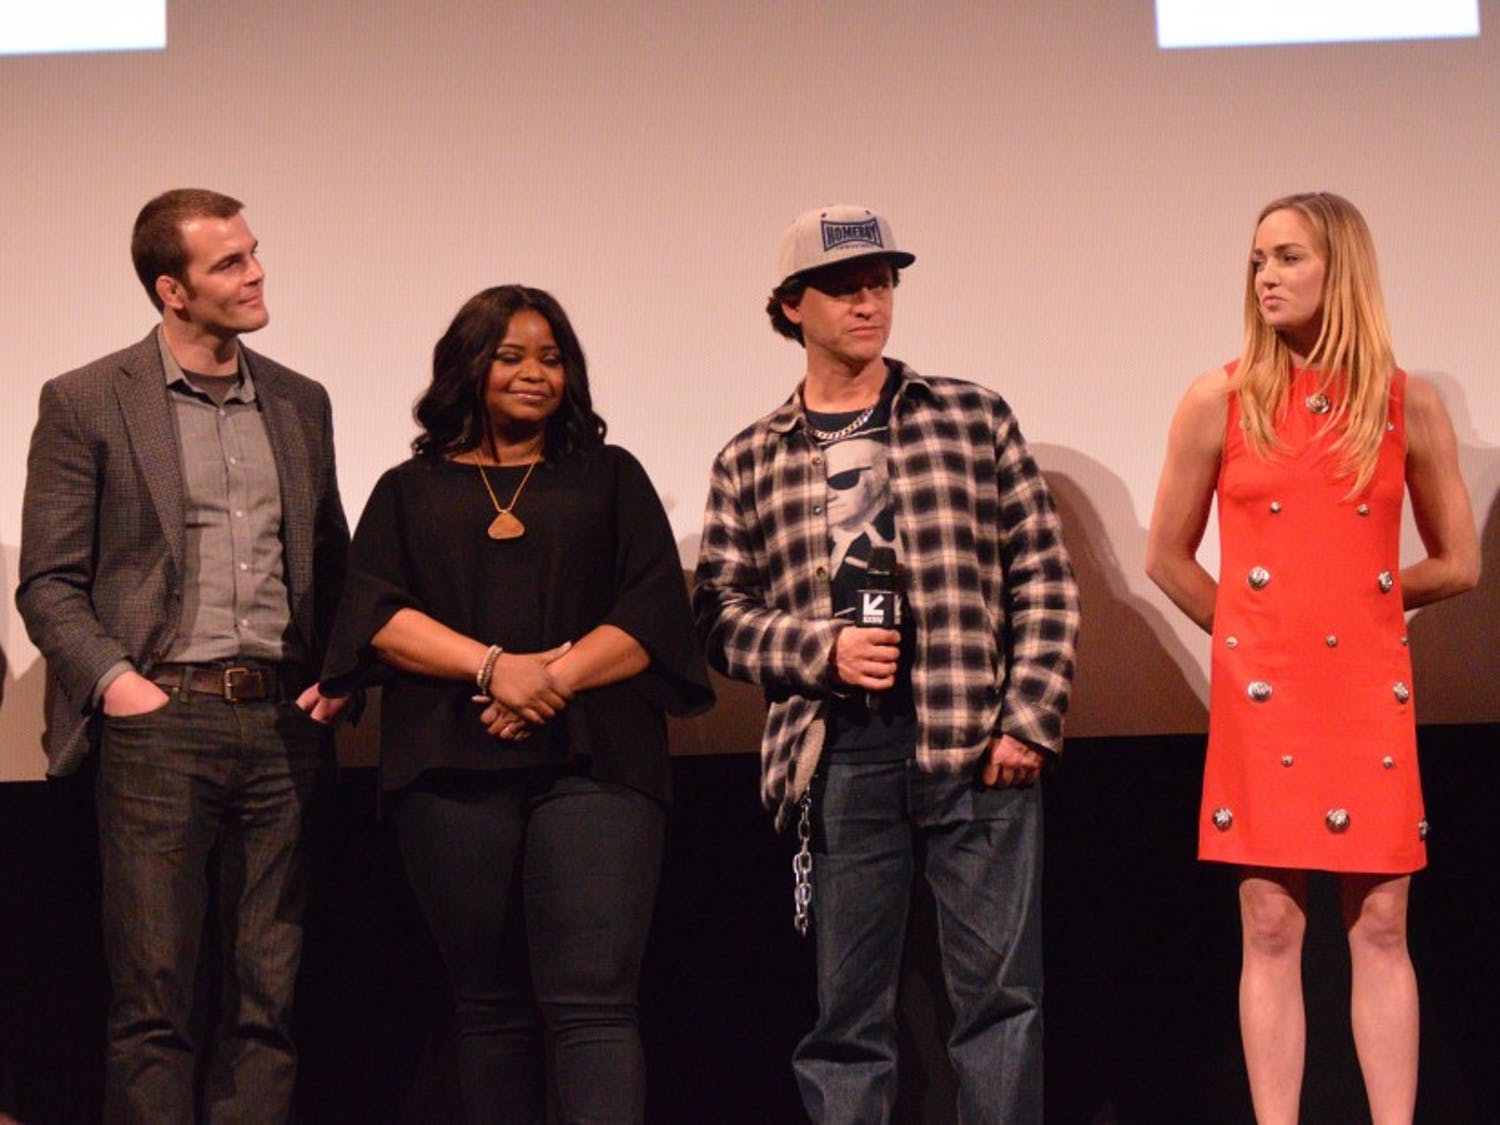 """From left: John Hawkes, director Ian Nelms, Octavia Spencer, Clifton Collins Jr. and Caity Lotz discuss their film """"Small Town Crime."""""""